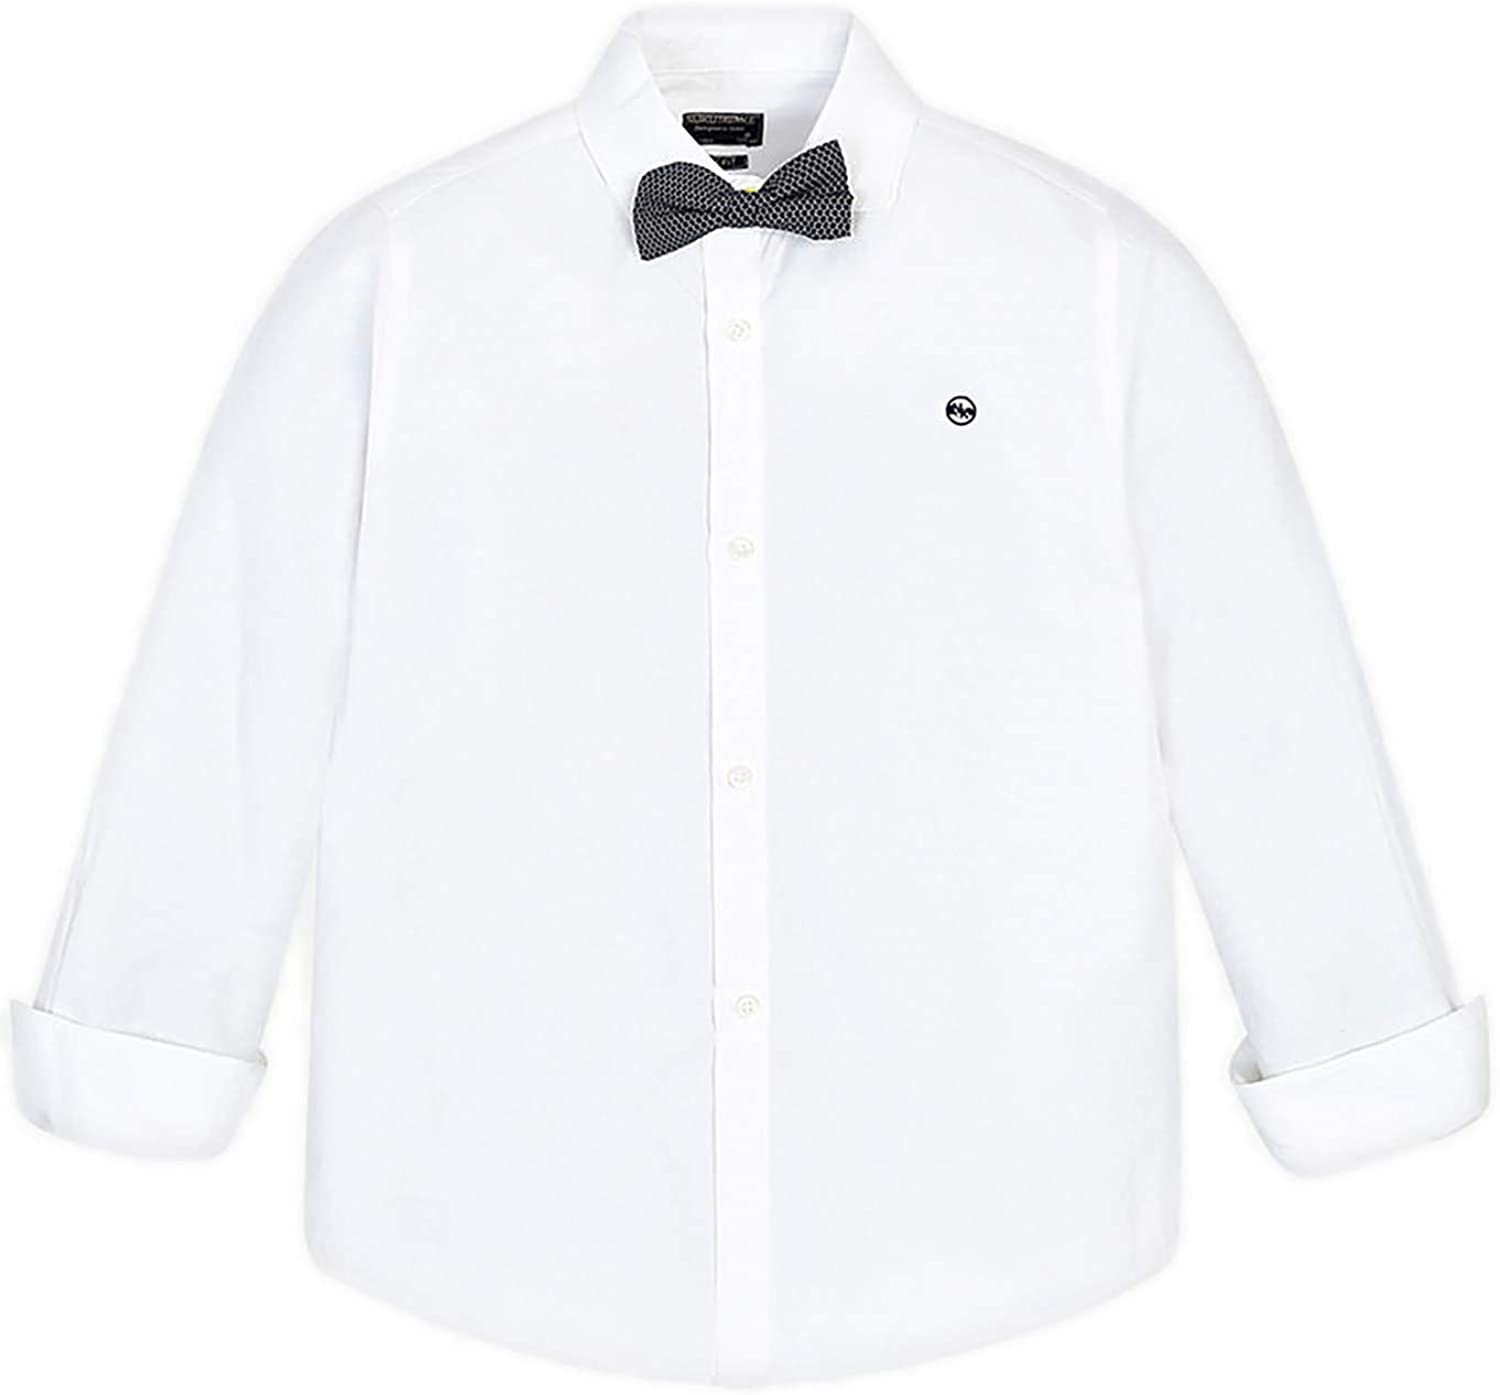 Mayoral - L/s Shirt for Boys - 6131, White